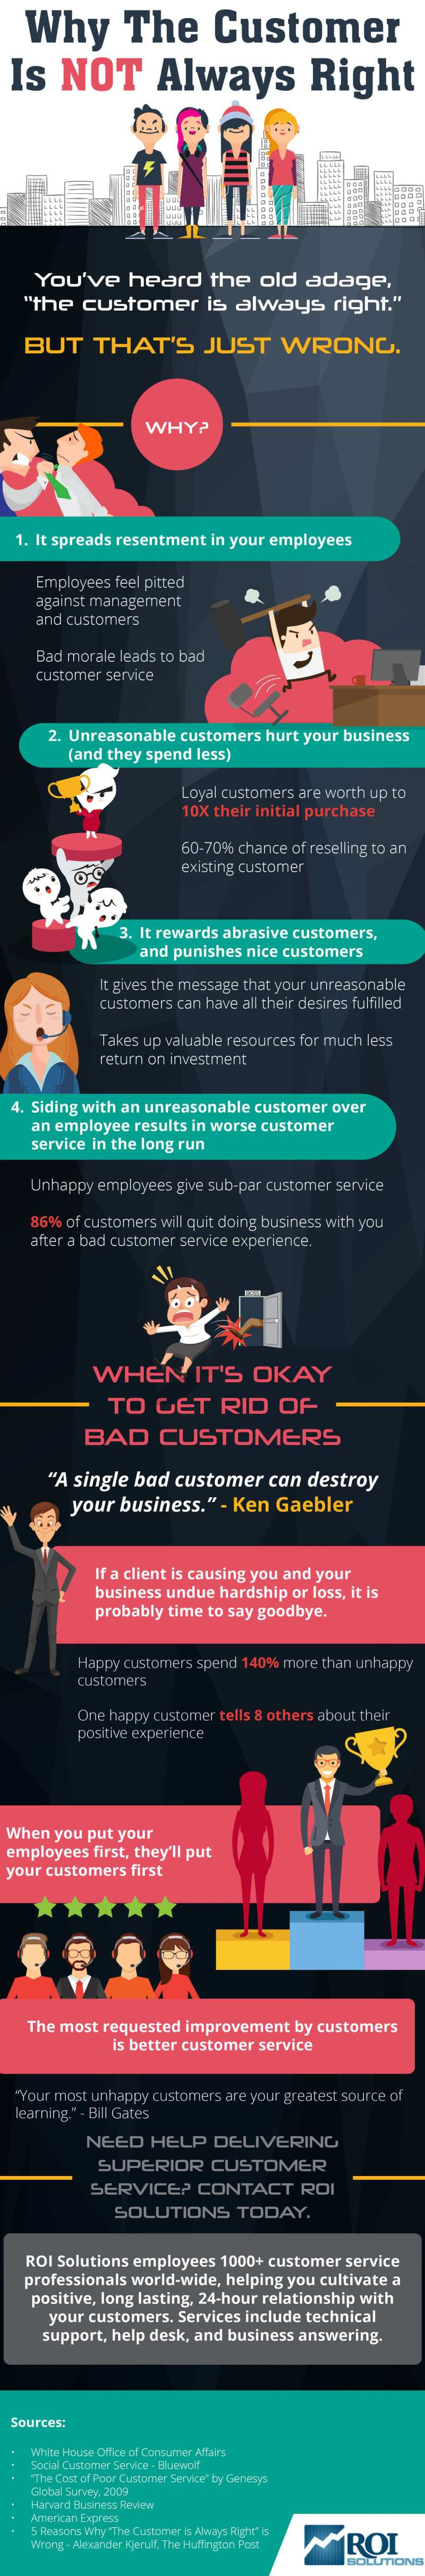 Customers Always Right - Not Necessarily